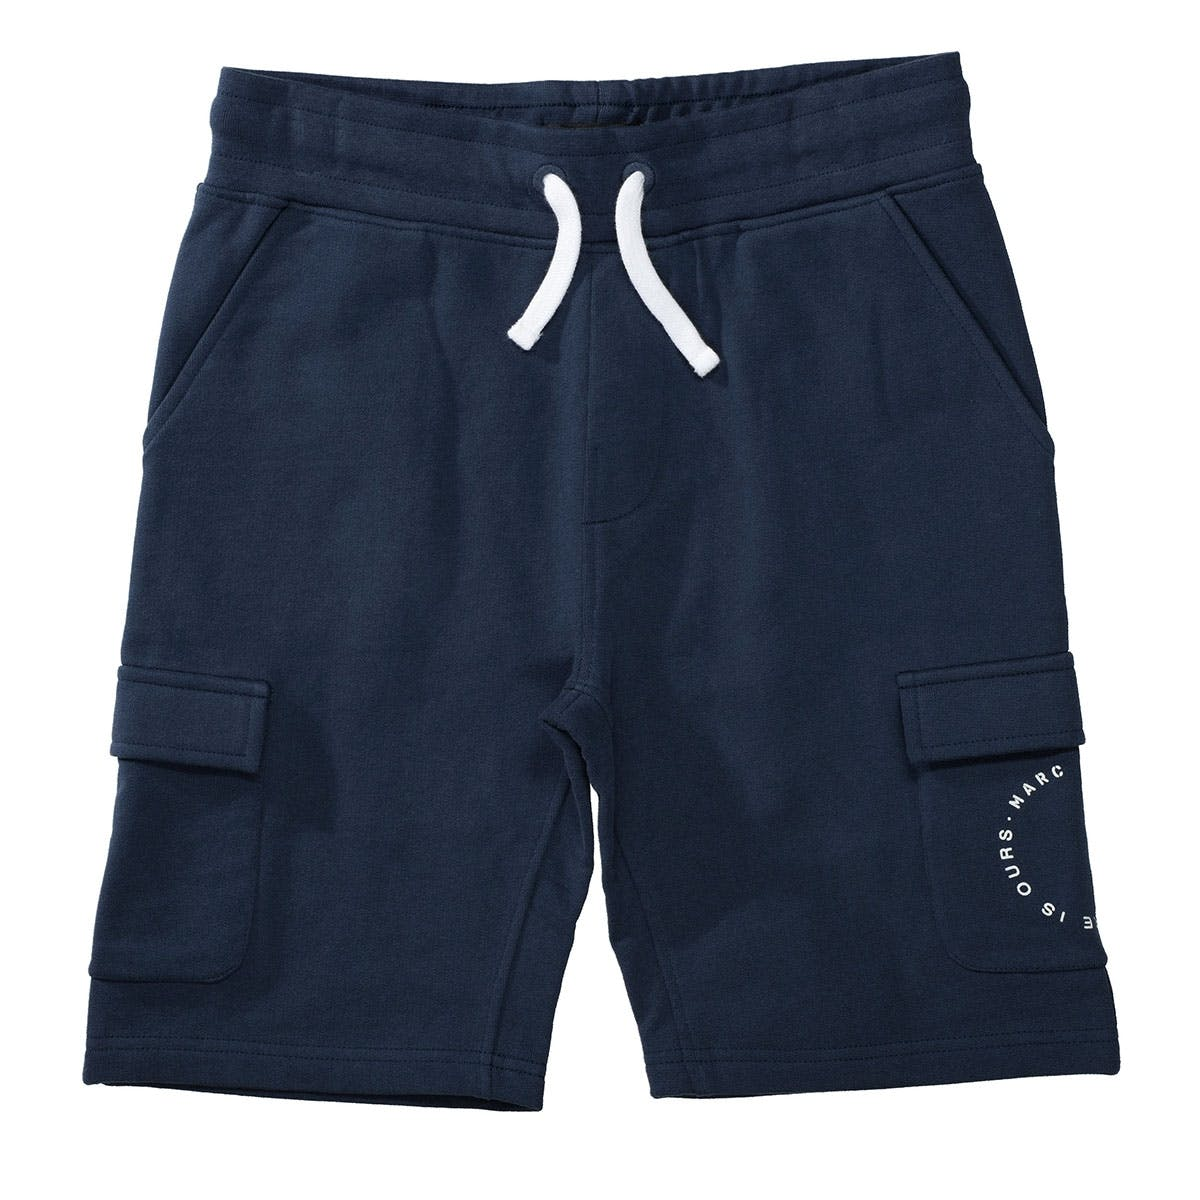 MARC O'POLO Sweatshorts aus Bio-Baumwolle - Washed Blue